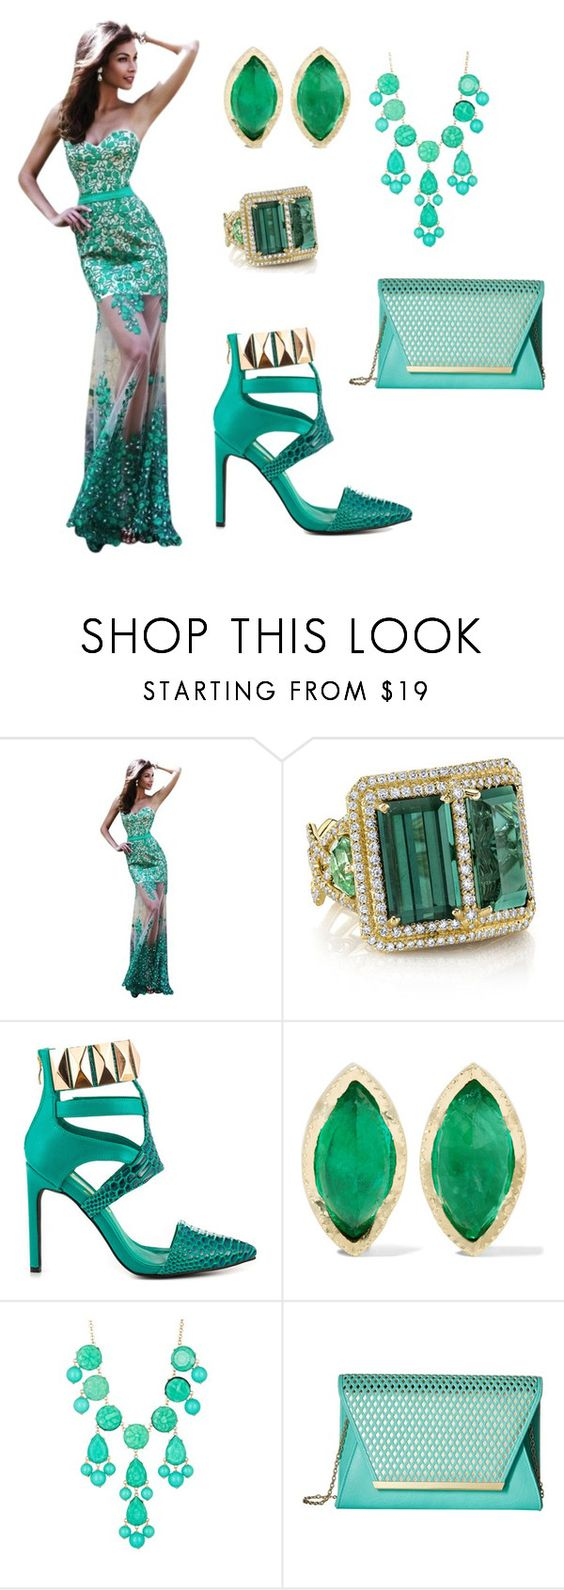 """""""Emerald queen"""" by mehrak ❤ liked on Polyvore featuring Sherri Hill, Erica Courtney, Privileged, BROOKE GREGSON, Natasha Accessories and Jessica McClintock"""